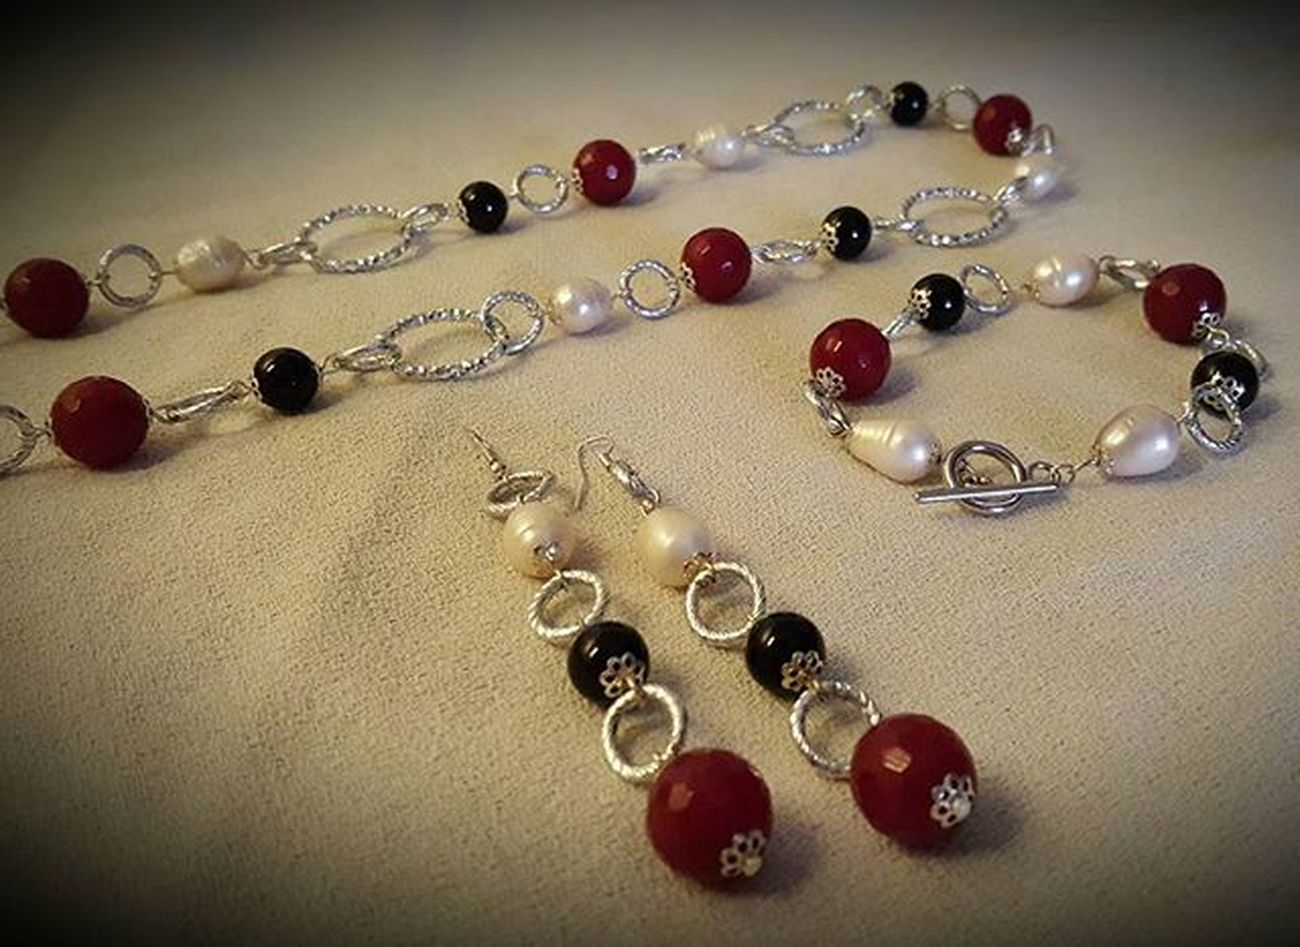 Set with ruby root, river pearls and black onyx - radice di rubino, onice nero e perle di fiume Setjewelry Setbigiotteria Blackonyx Onyx Riverpearls Pearls Hobby Rubyroot Onicenero Onice Perledifiume Radicedirubino Bigiotteriaartigianale Bigiotteria